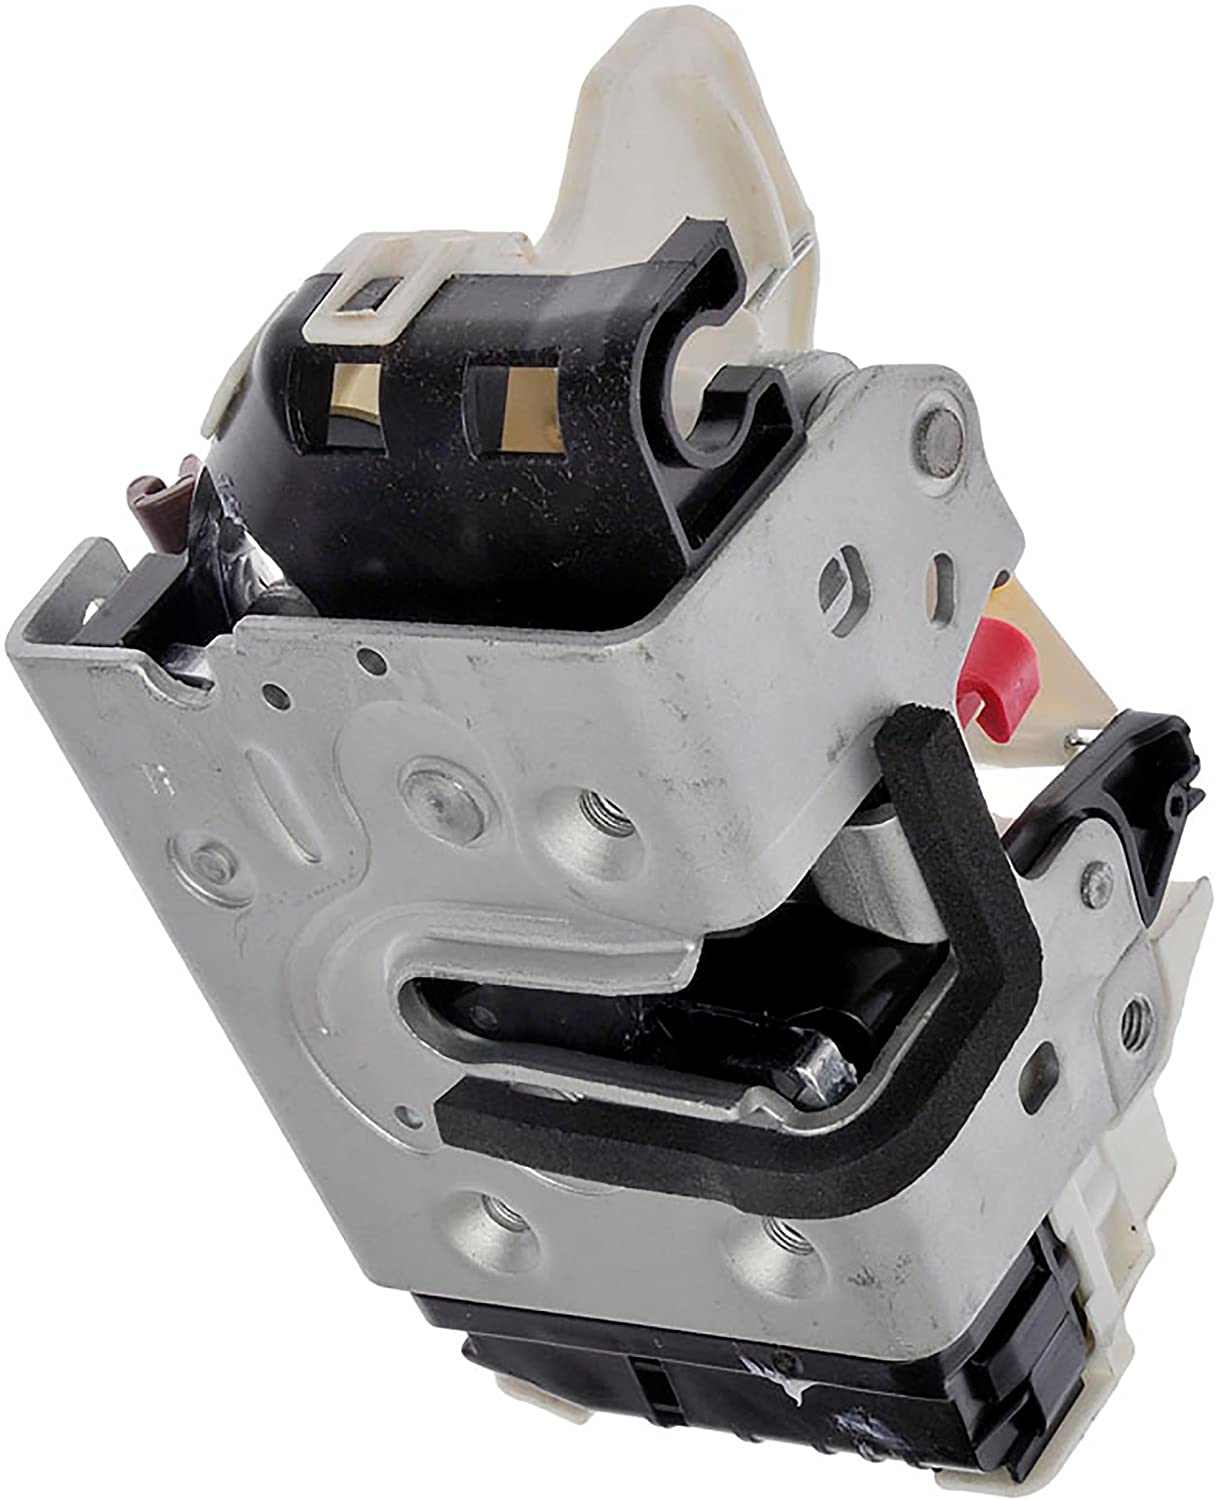 APDTY 136084 Front Right (Passenger-Side) Door Lock Actuator Fits Select Dodge Caliber/Jeep Compass, Patriot (Replaces 4589046AB, 4589416AA, 4589416AE, 4589416AF, 4589416AG)